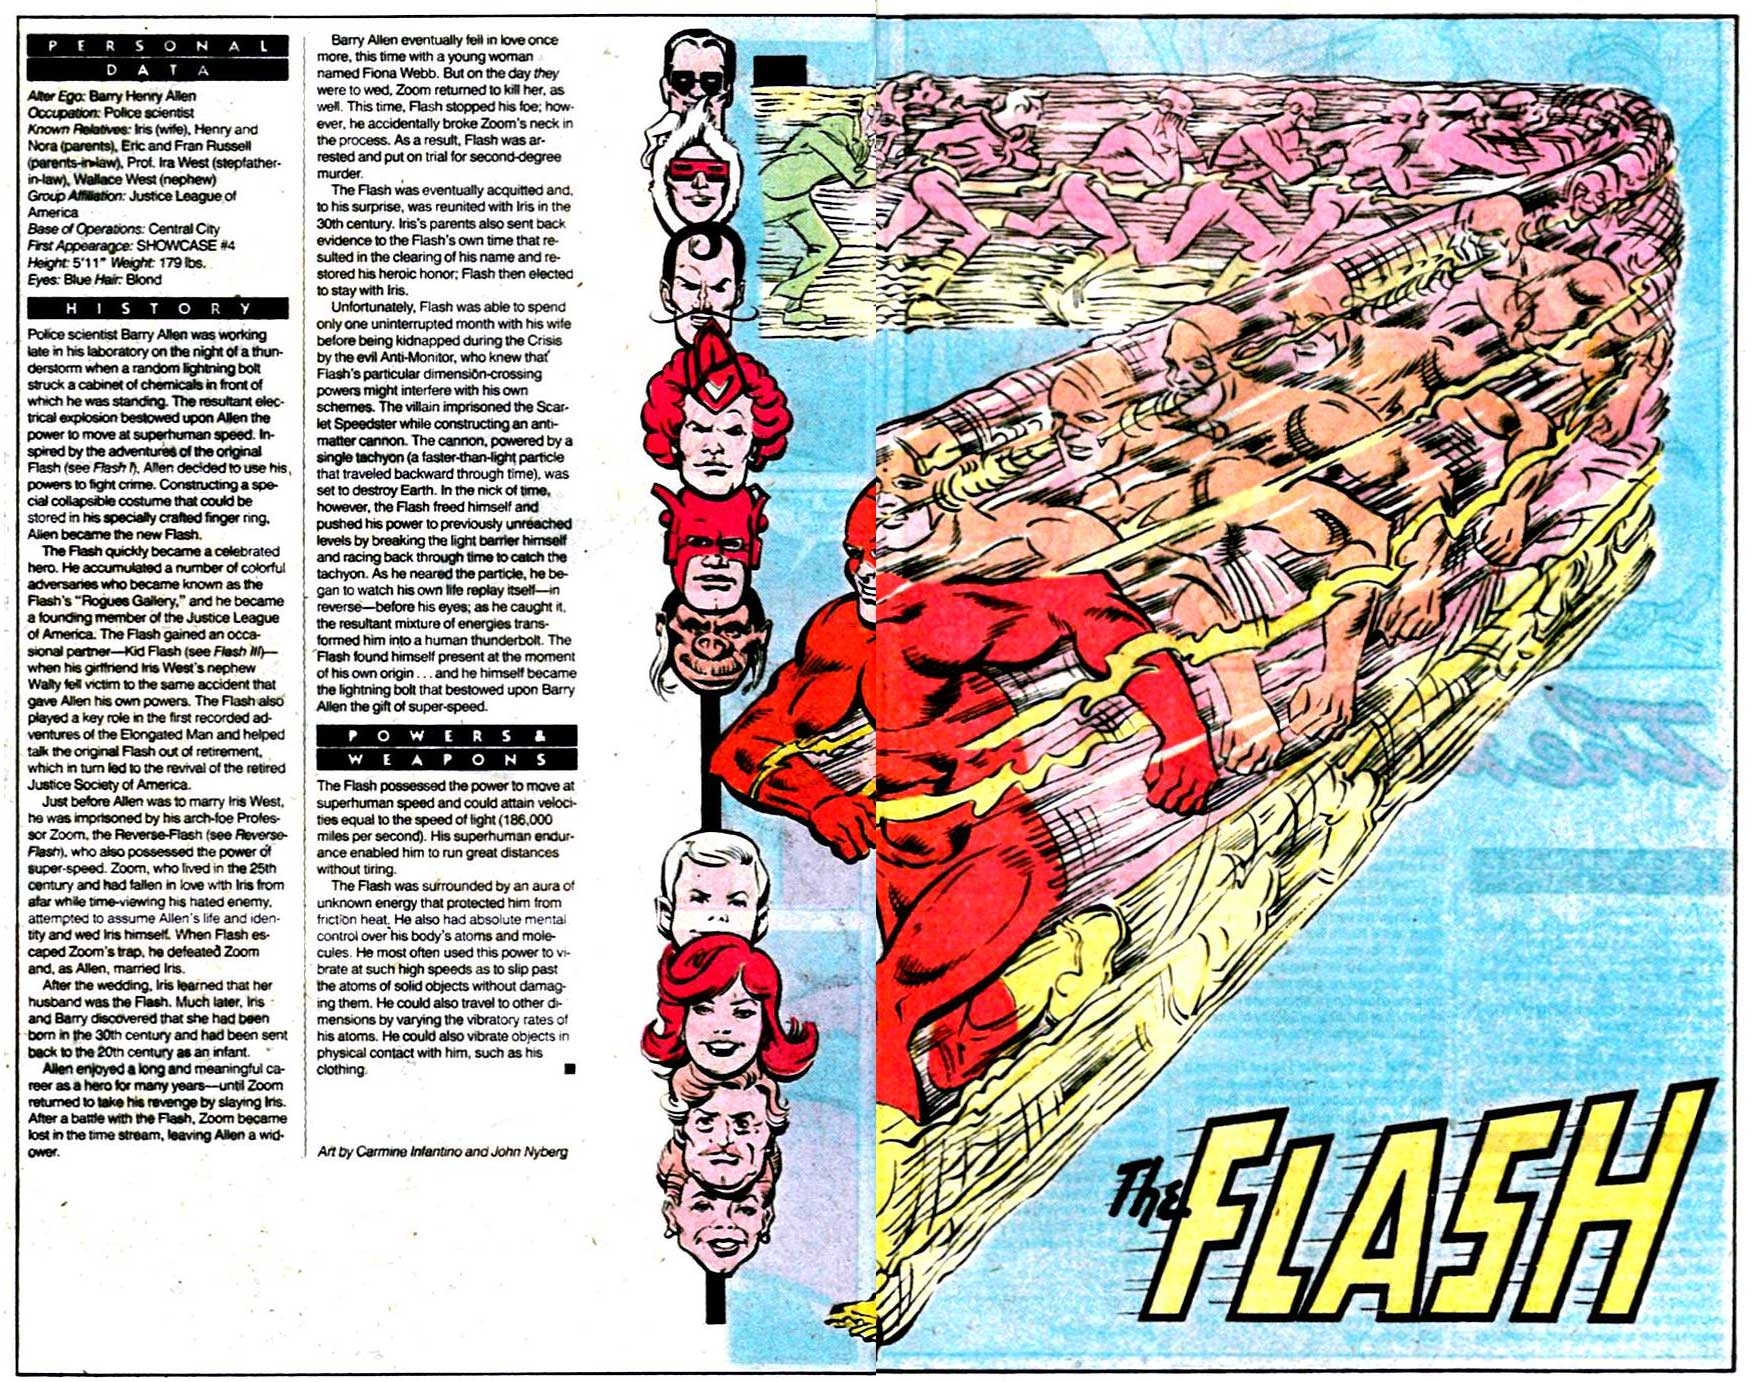 Who's Who 1989 Annual The Flash (Barry Allen) by Carmine Infantino and John Nyberg